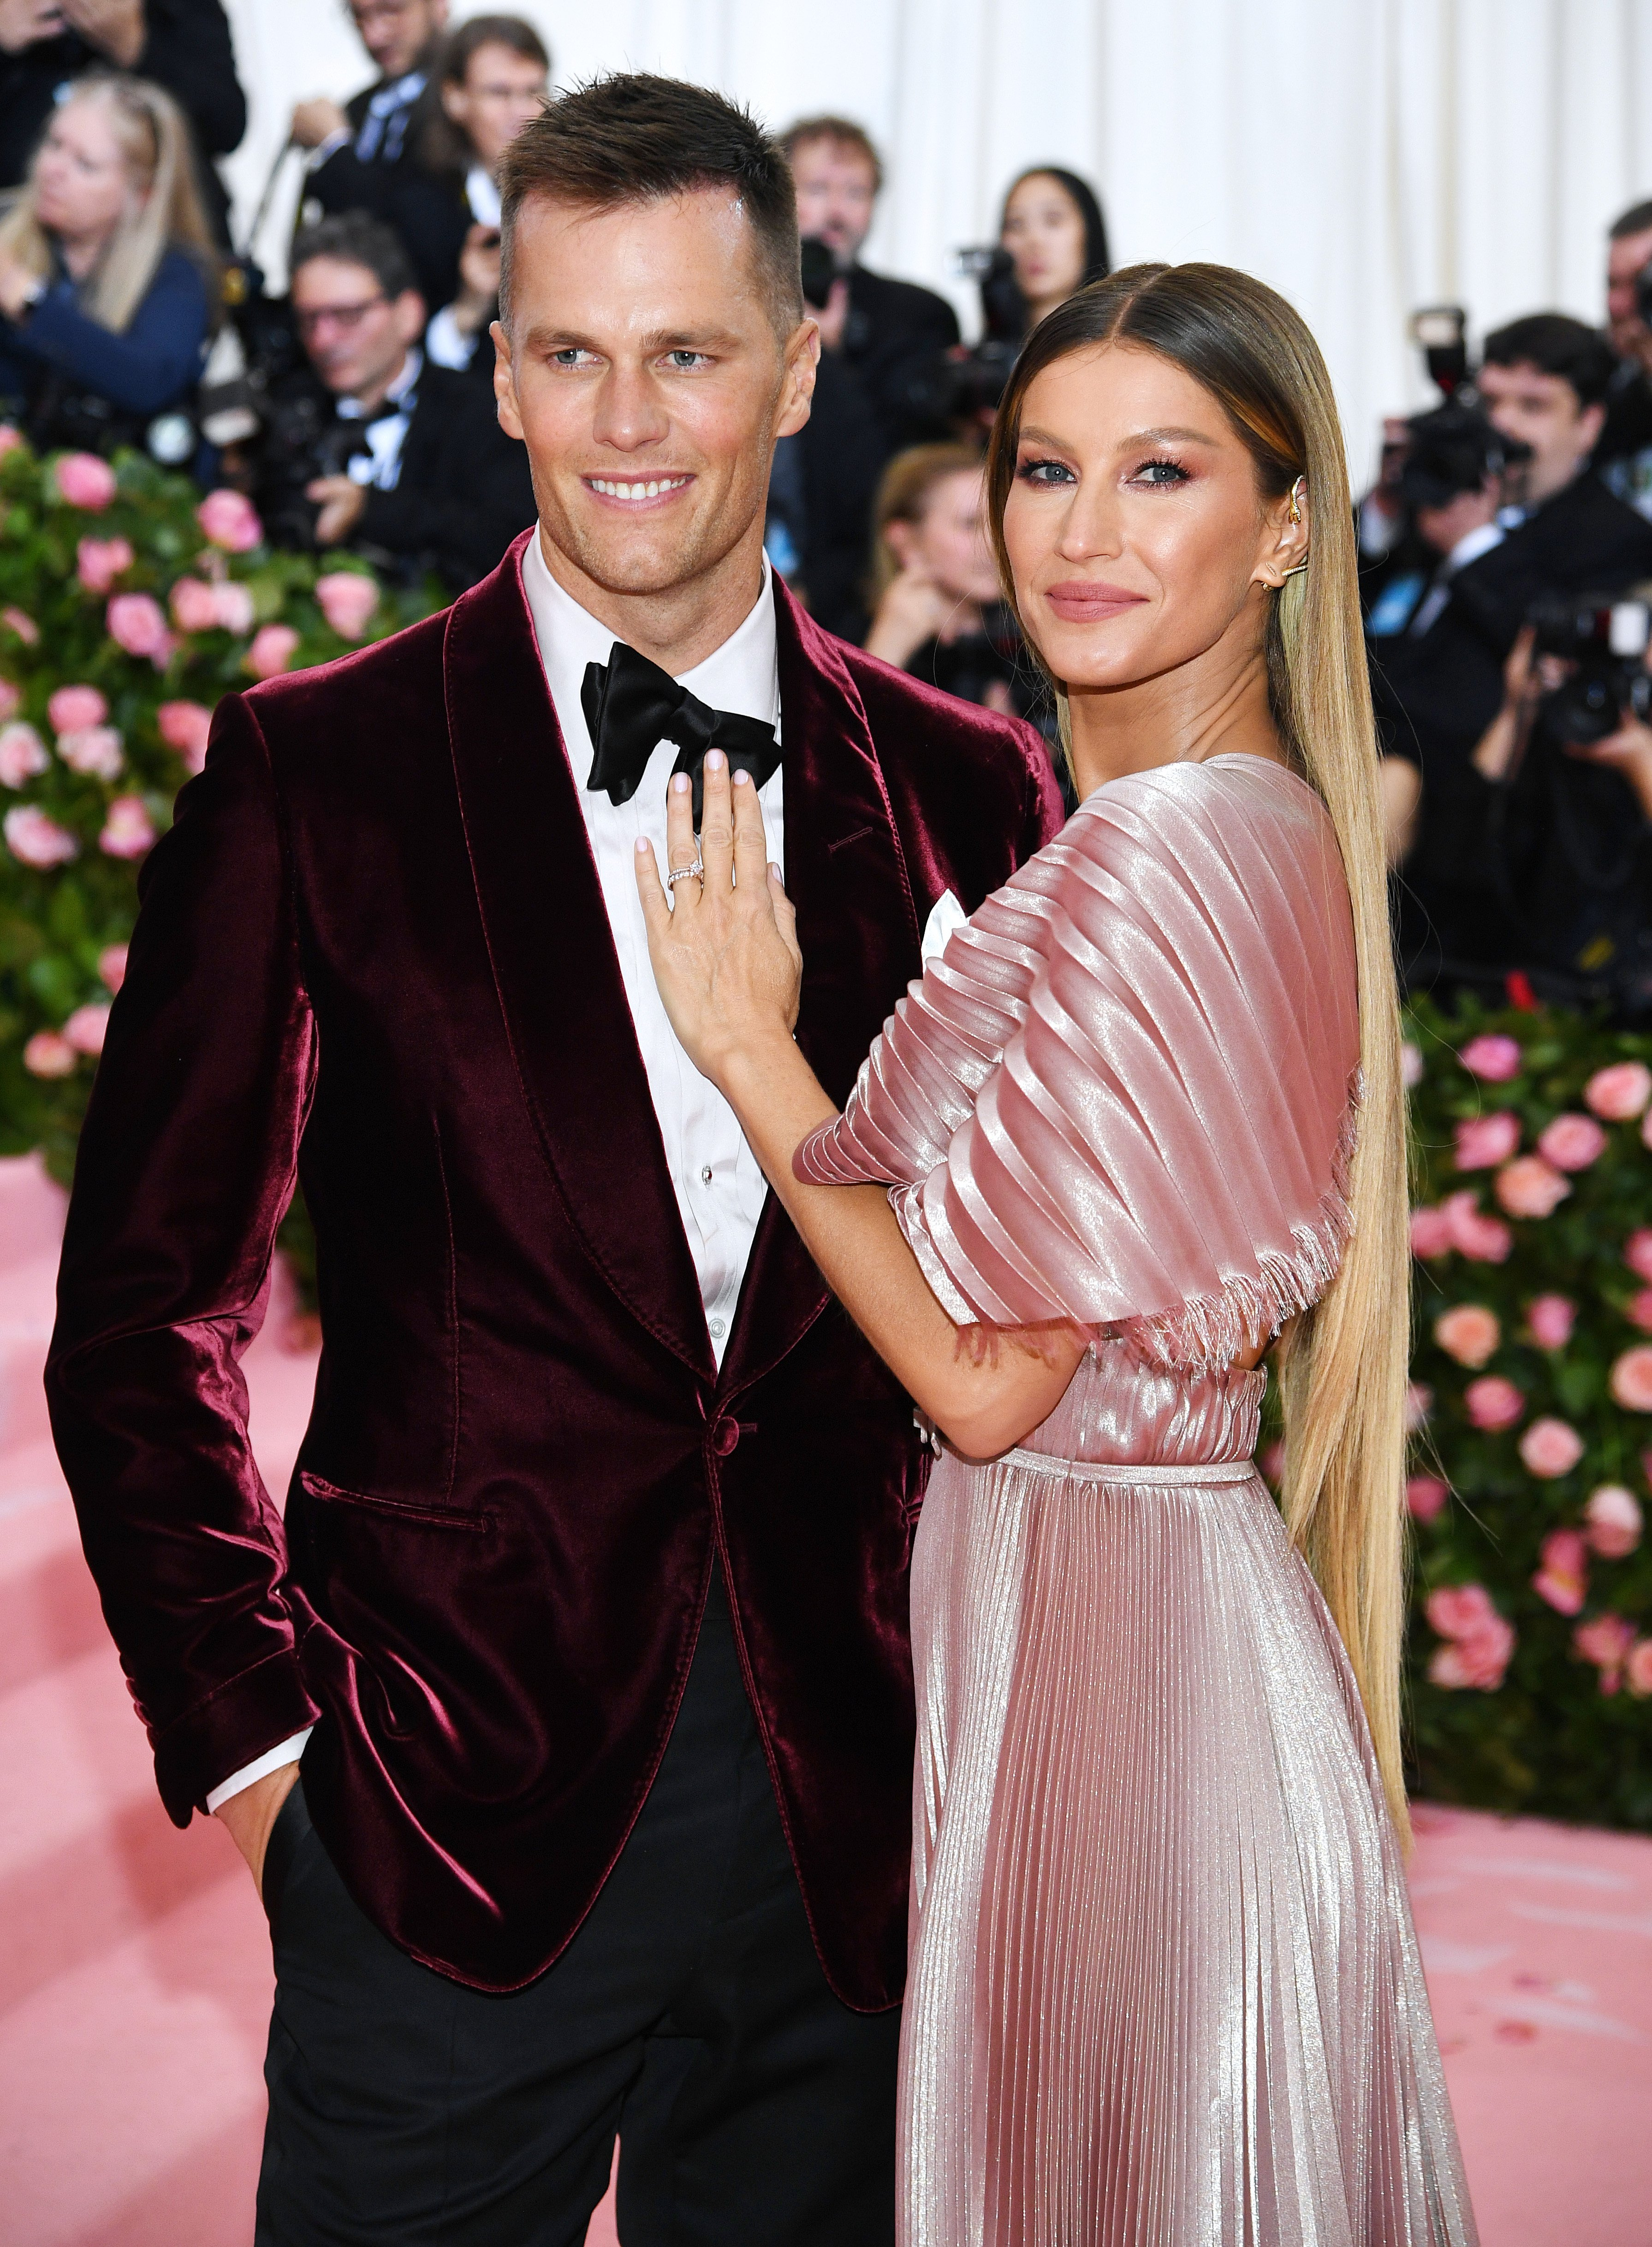 Gisele Bündchen and Tom Brady attend The 2019 Met Gala Celebrating Camp: Notes on Fashion on May 06, 2019, in New York City. | Source: Getty Images.